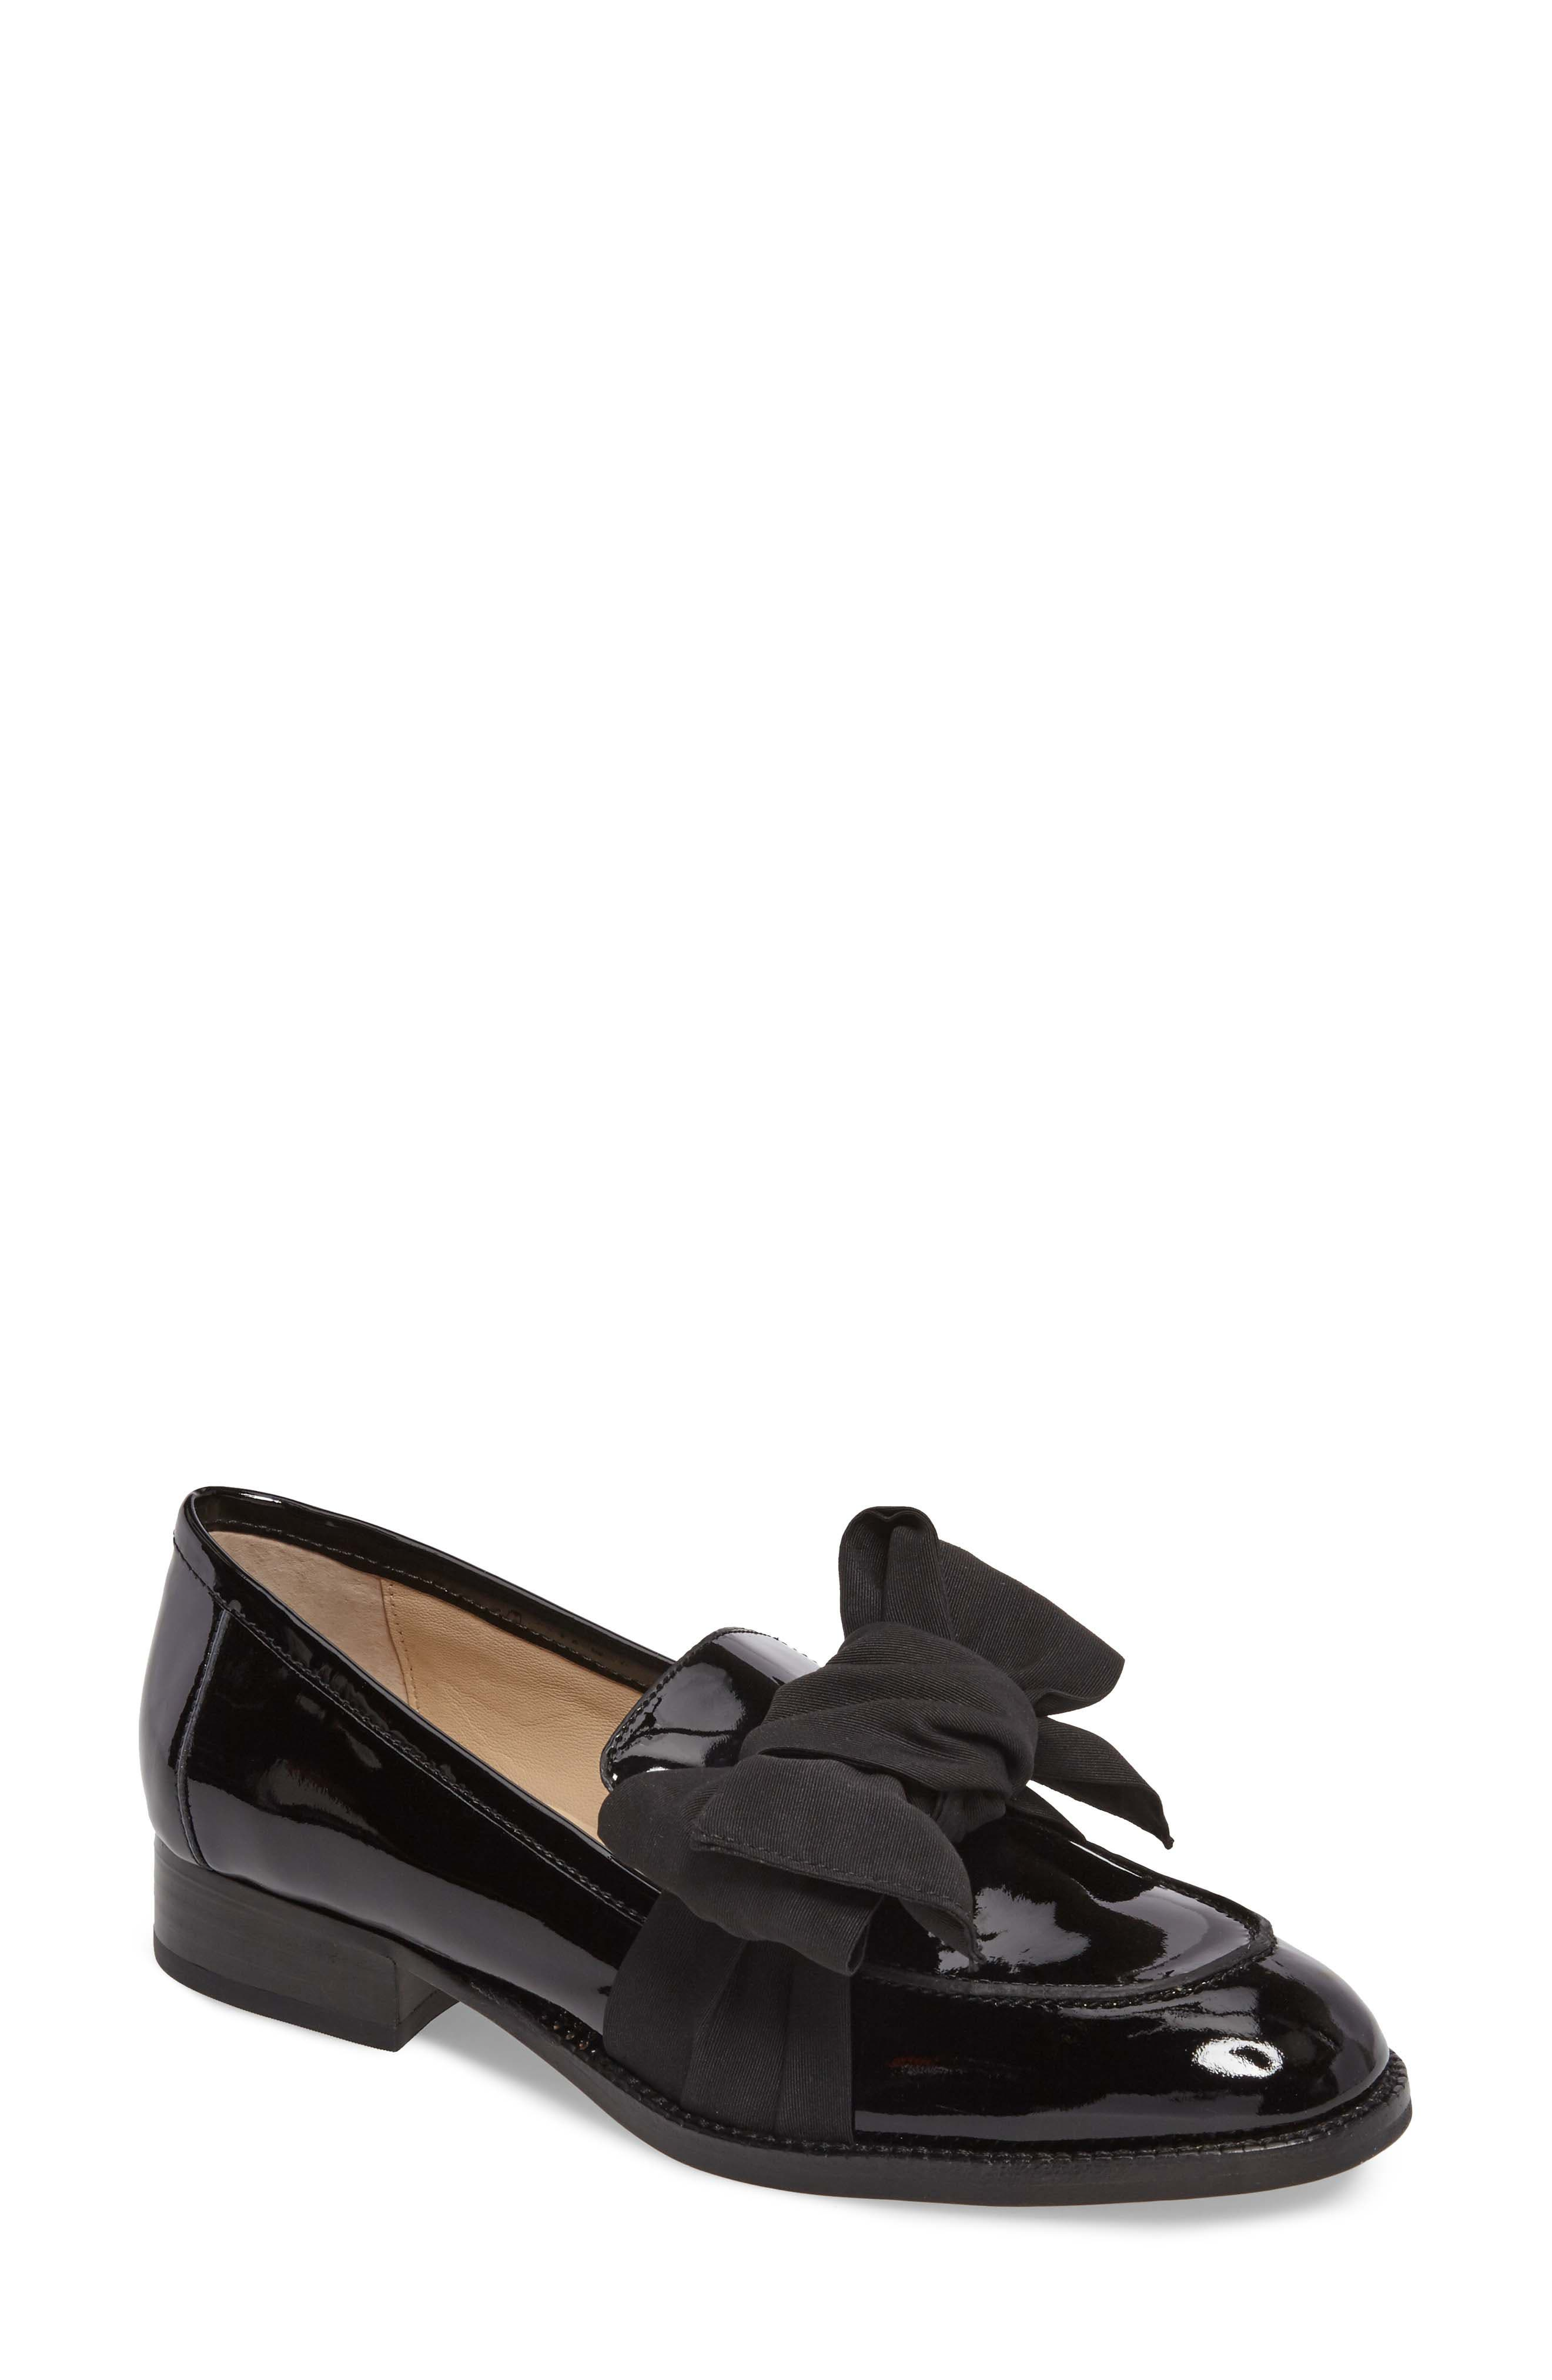 Botkier Violet Bow Loafer, Black